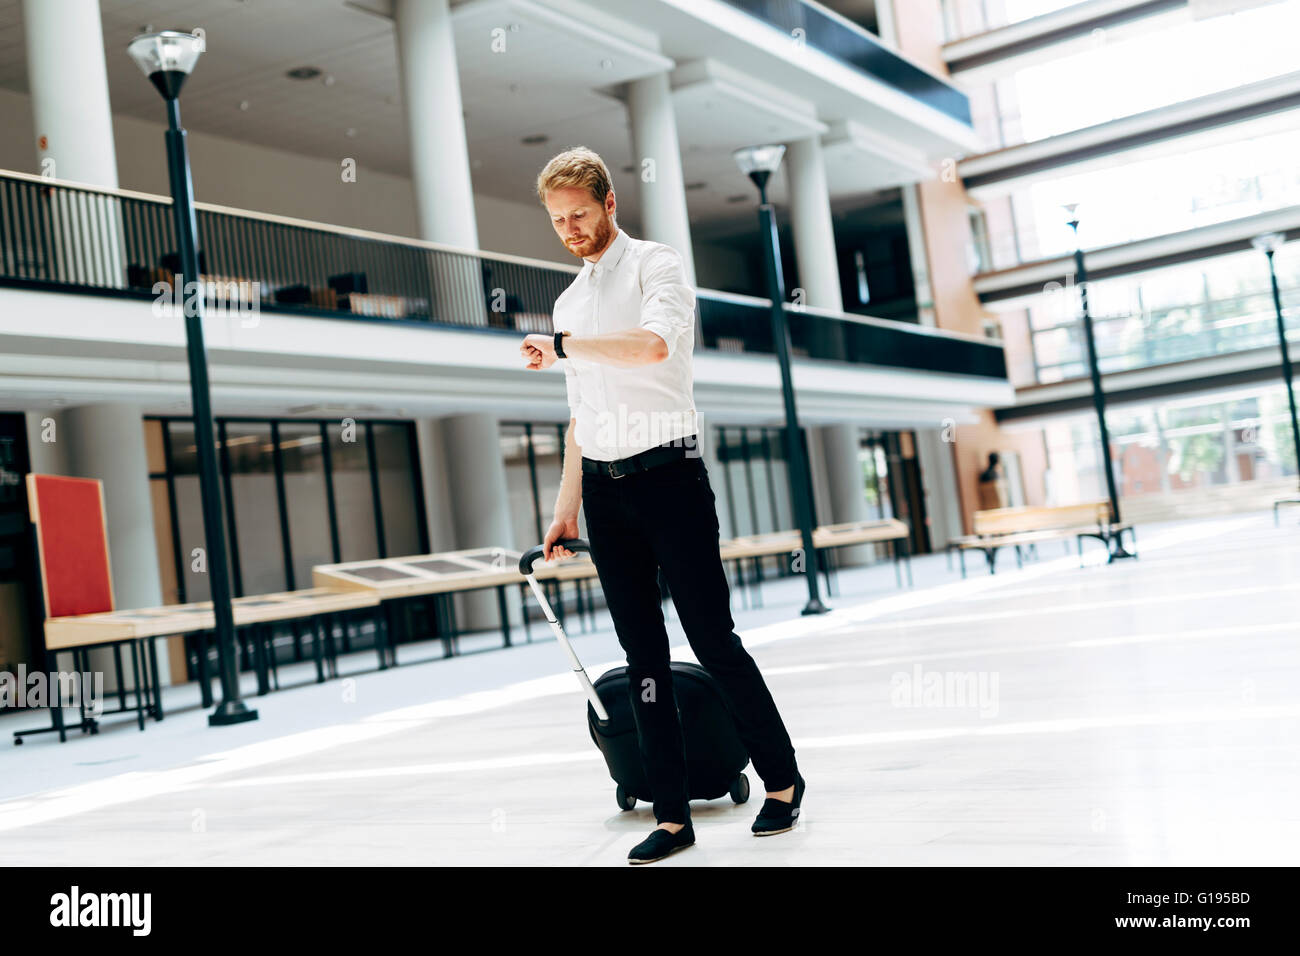 Handsome business holding a trolley and walking in a modern building - Stock Image